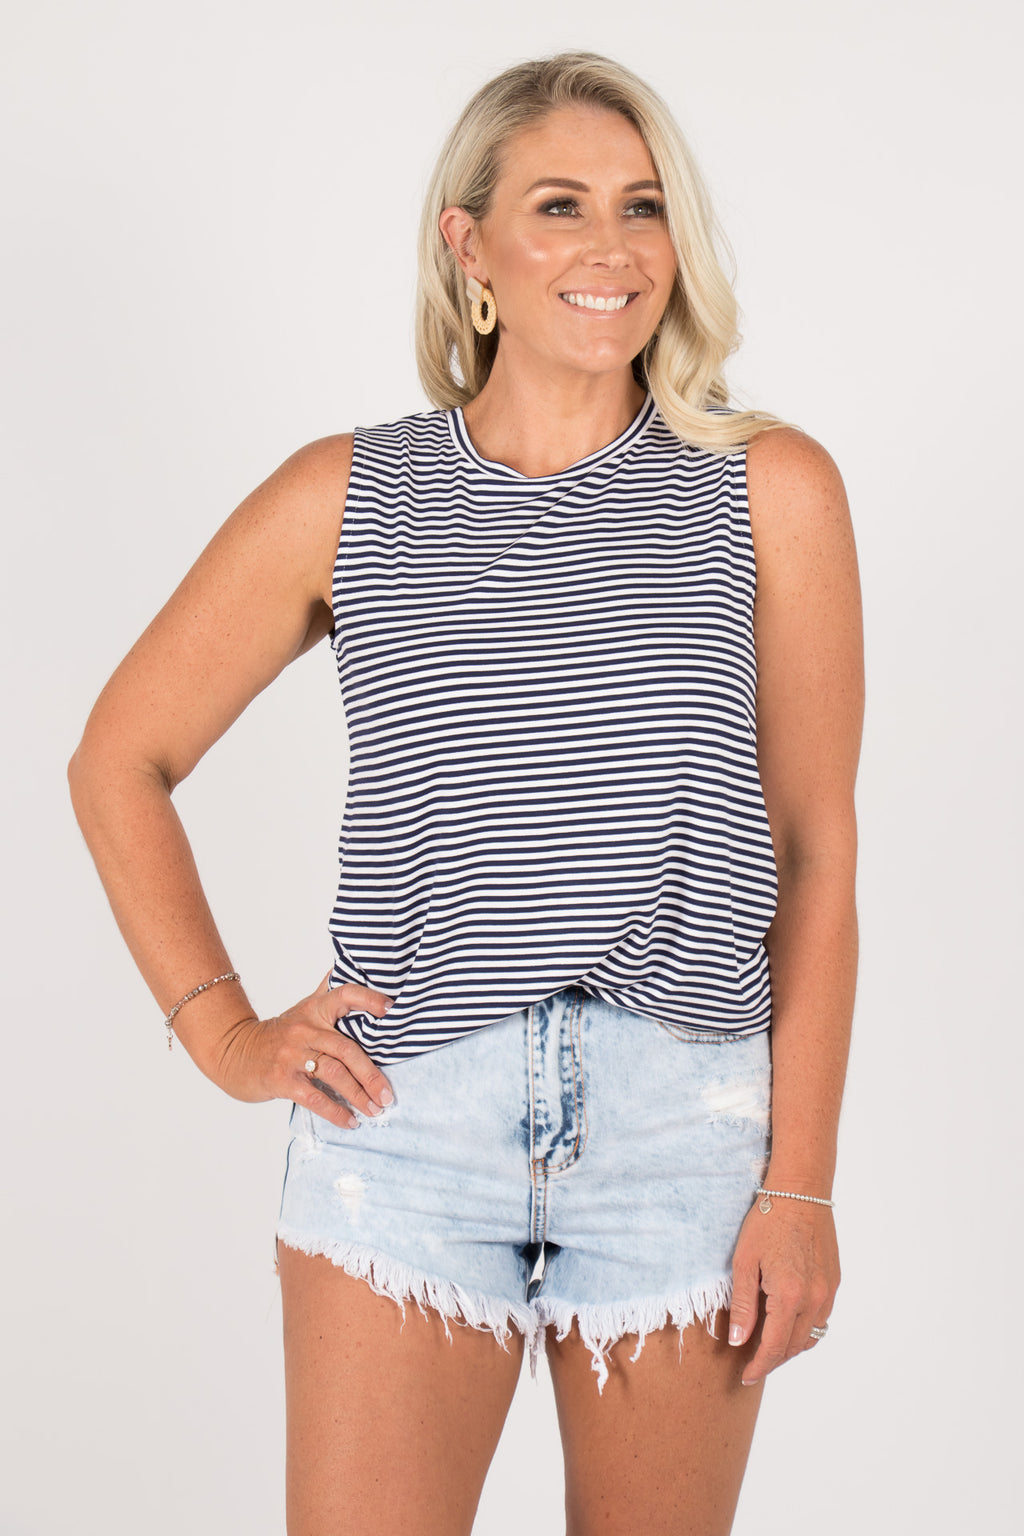 Capri Tank in Navy Blue/White Stripe